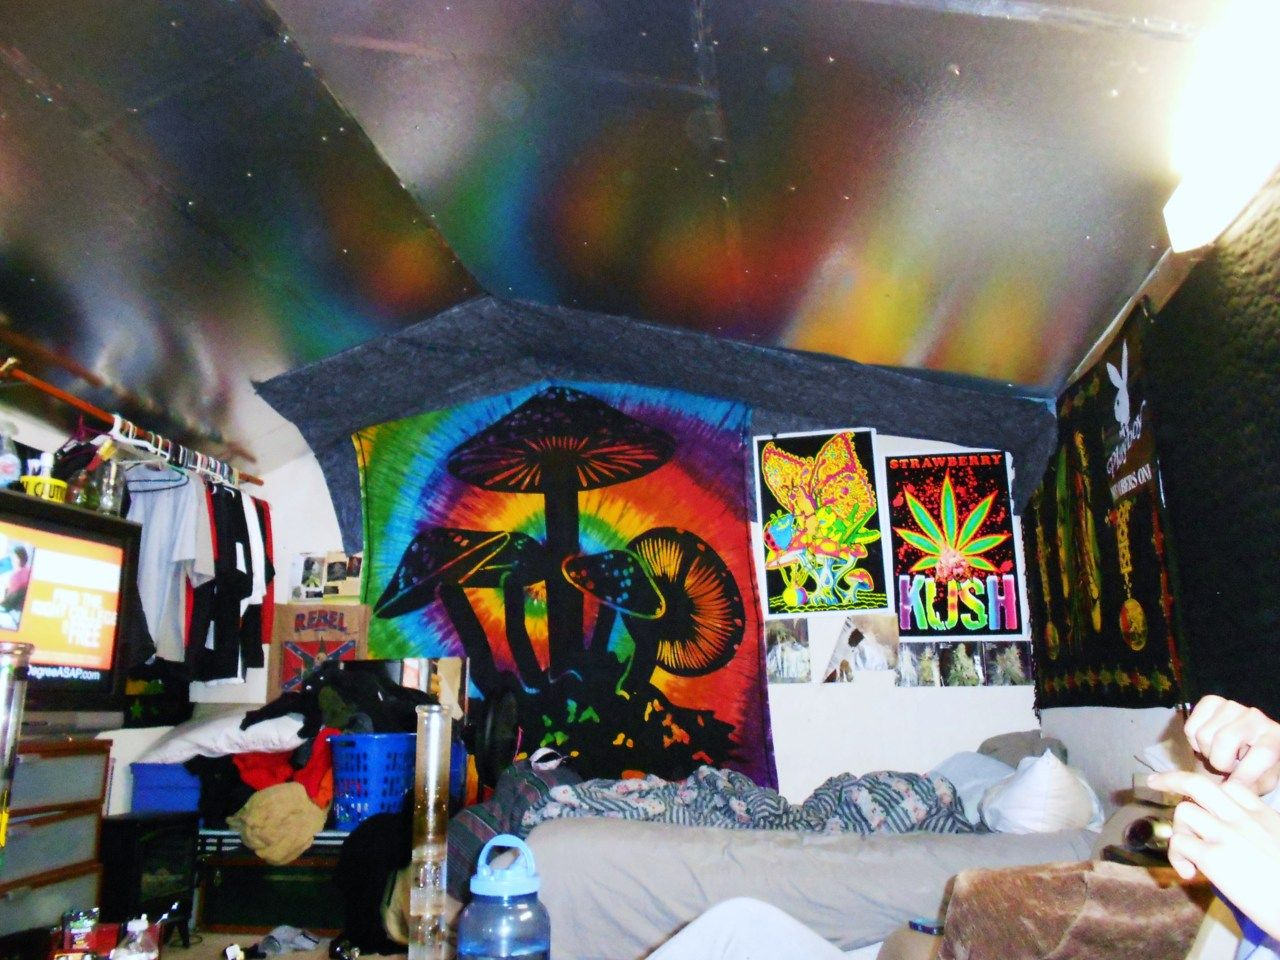 Tags for this image include room light bedroom tumblr and grunge - Stoner Room Google Search